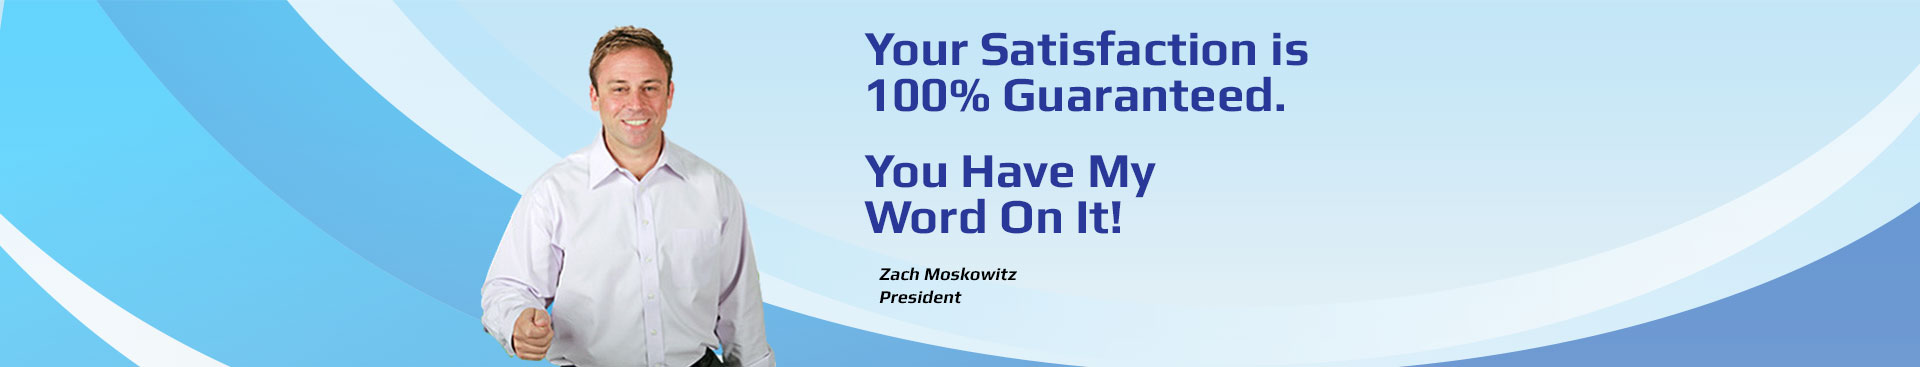 Your Satisfaction is 100% Guaranteed.